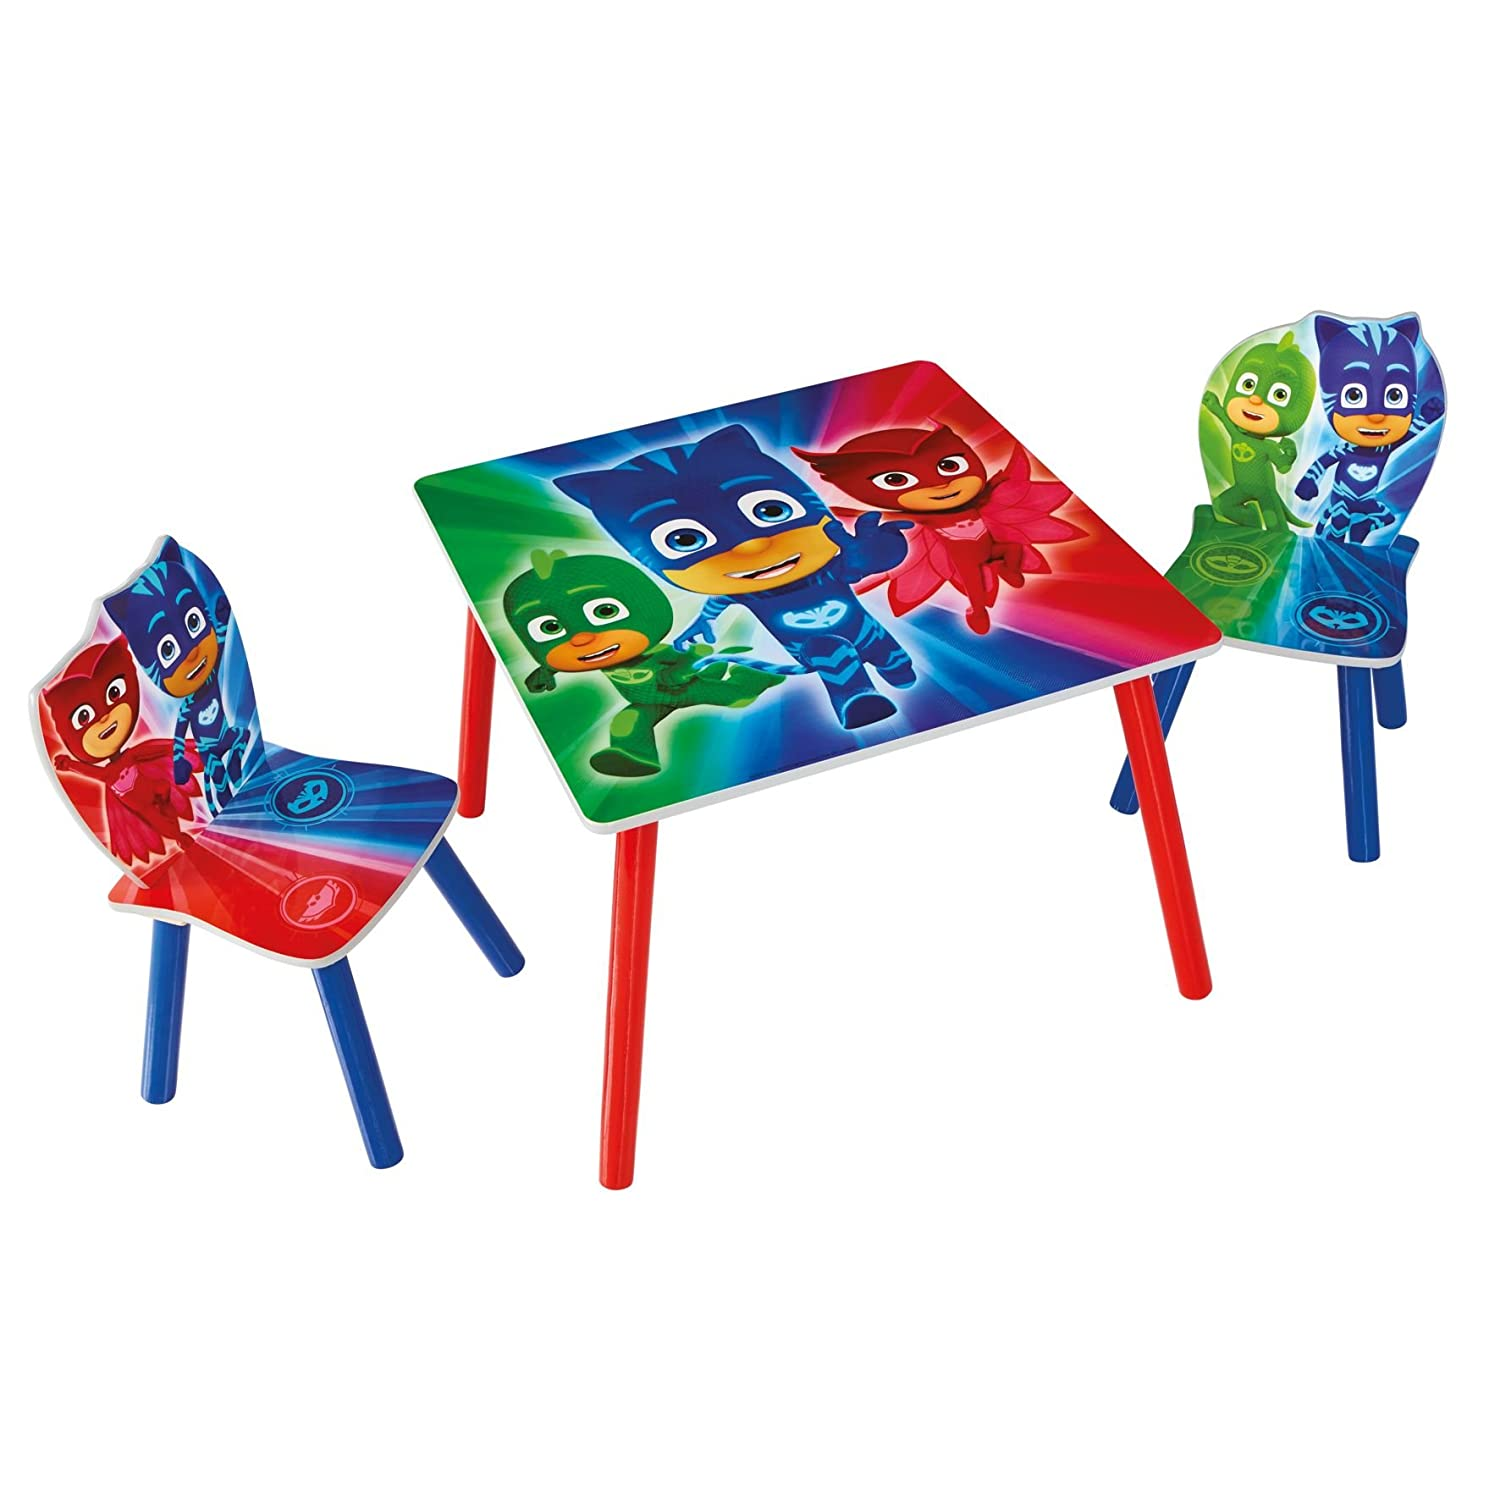 HelloHome Pj Masks Kids Table And 2 Chairs Set, Wood, Multicoloured Worlds Apart 527PJM